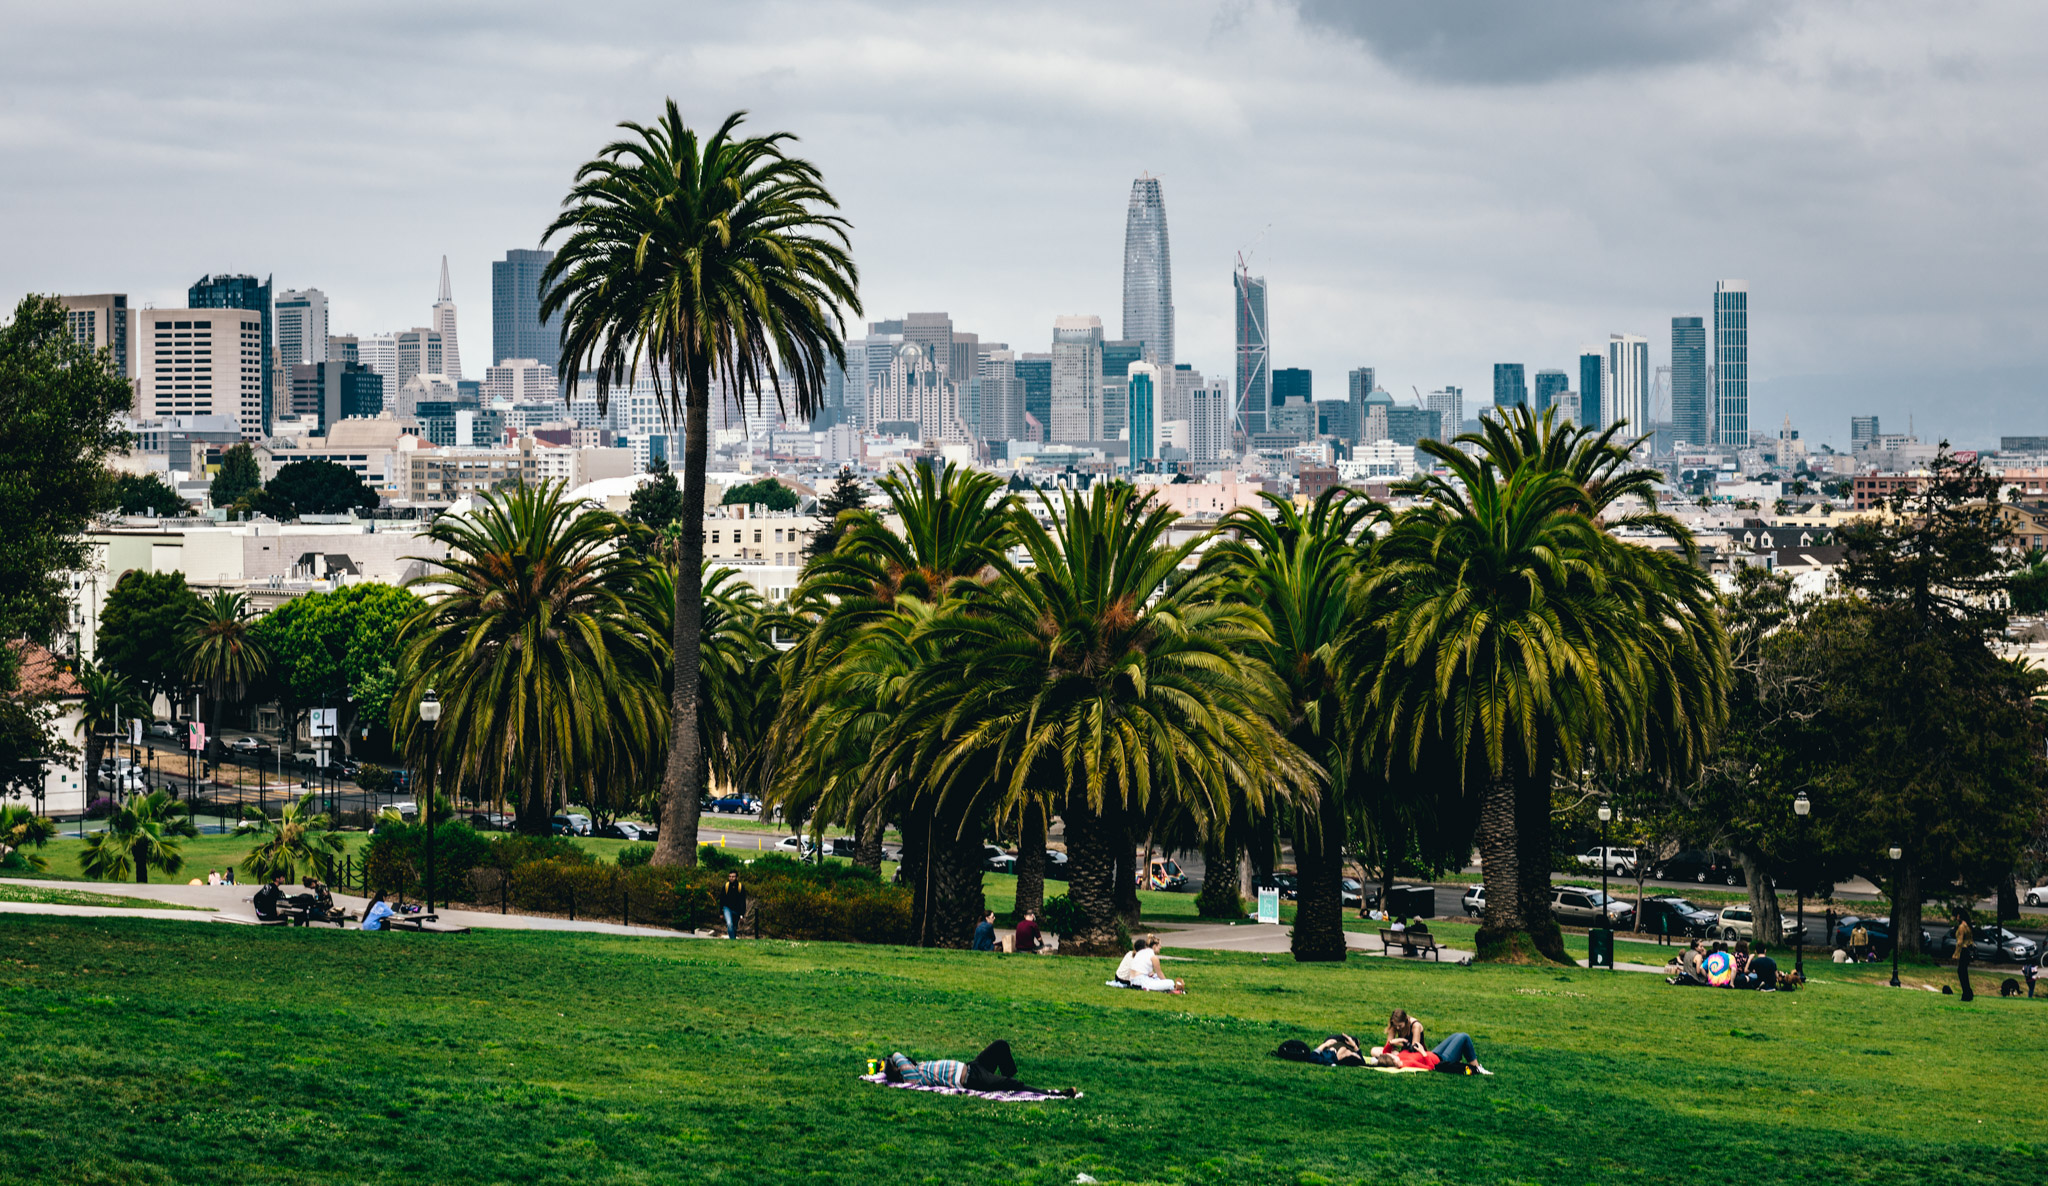 California : San Francisco : Mission Dolores Park